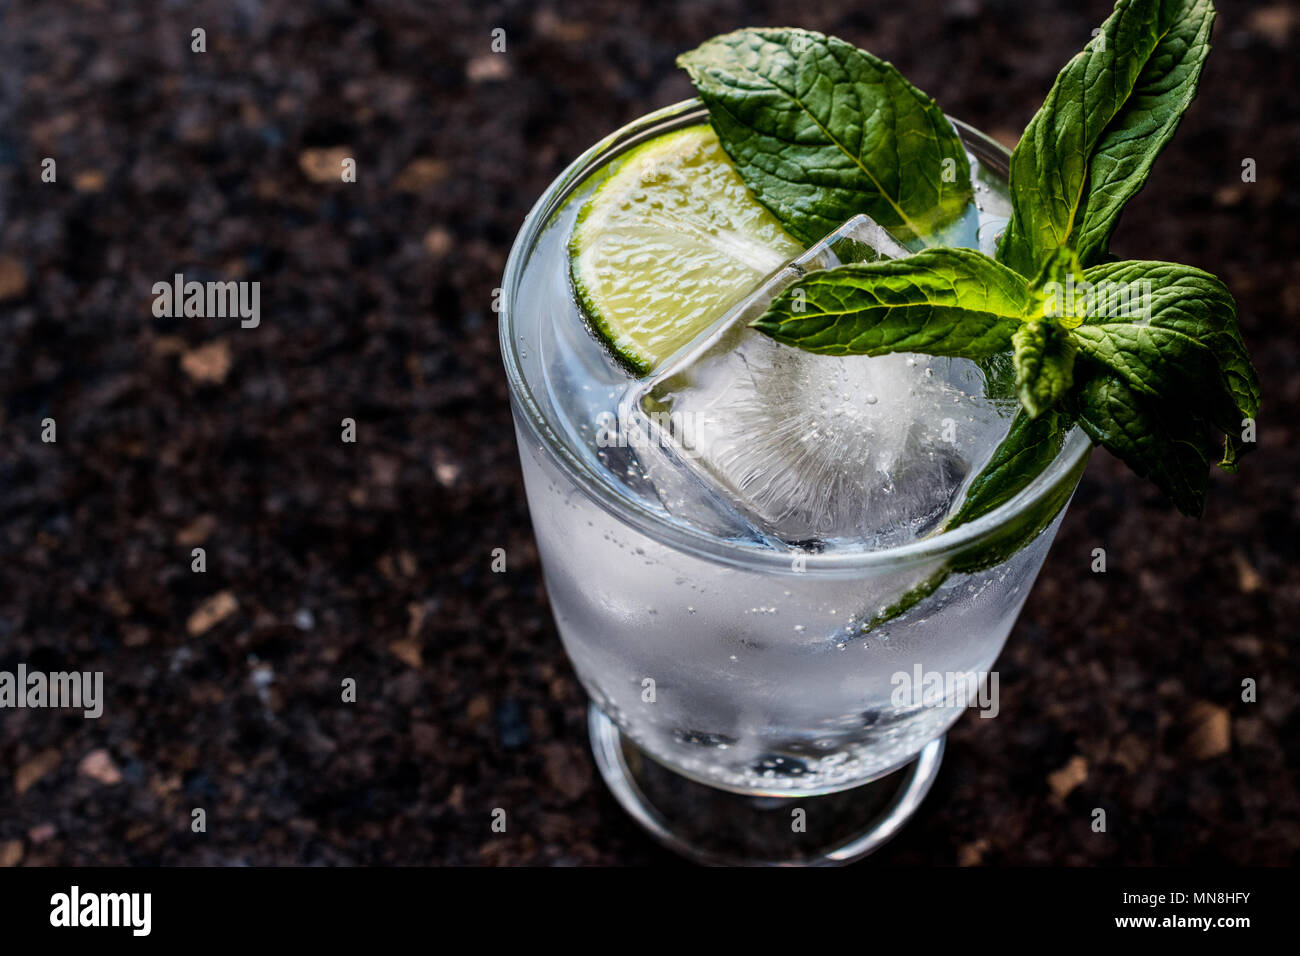 Vodka or Gin Tonic Cocktail with lime, mint leaves and ice. Beverage Concept. - Stock Image